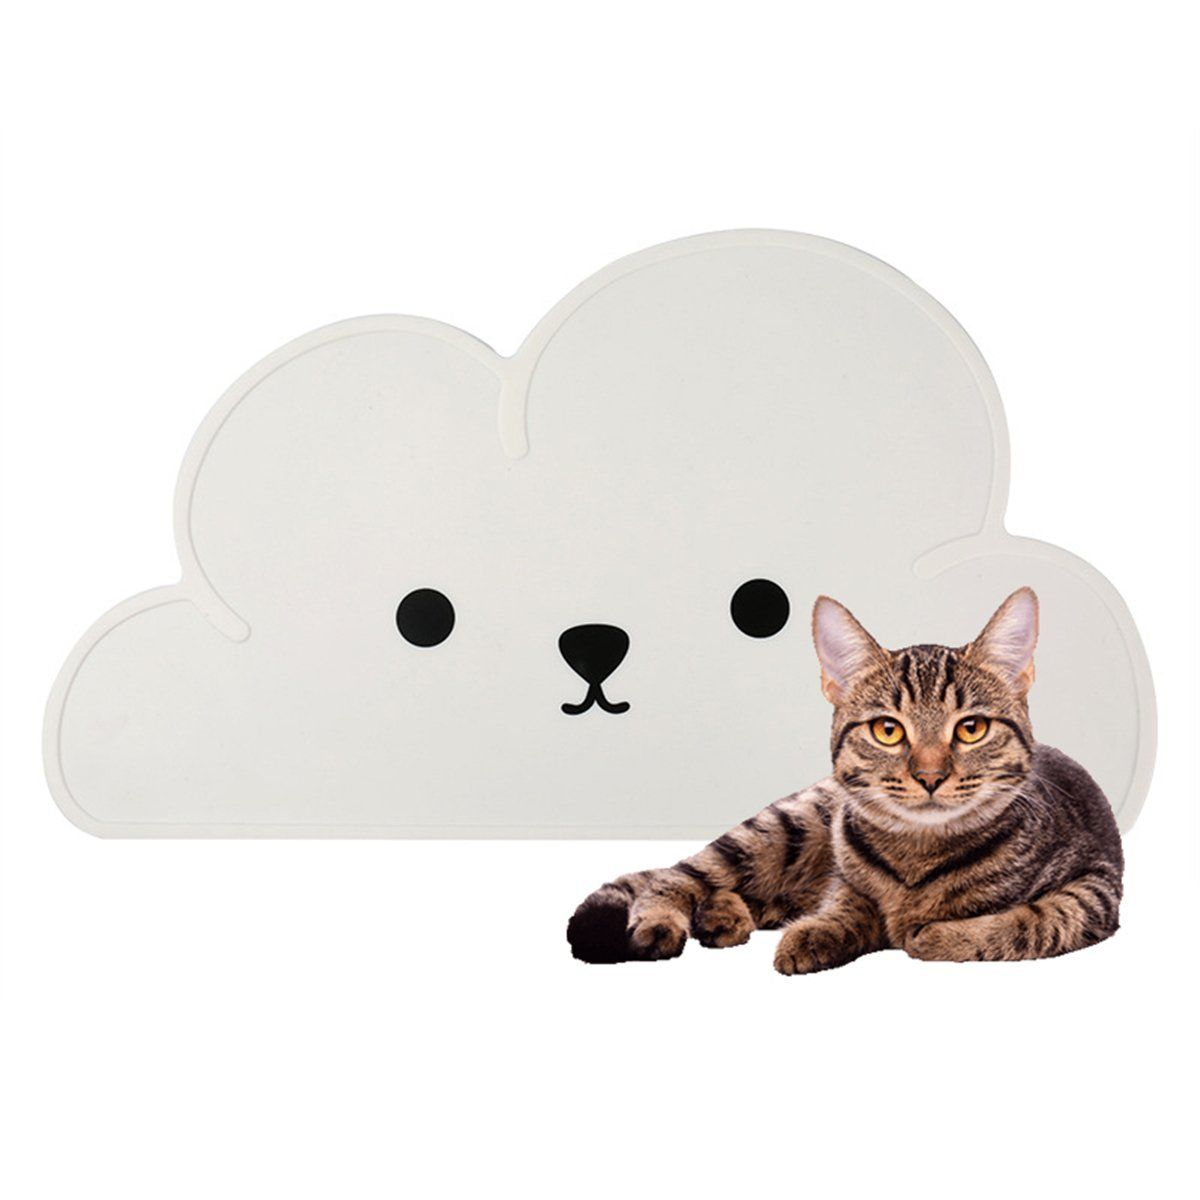 Pet Feeding Mat Silicone Cute Cloud Pattern With Smile